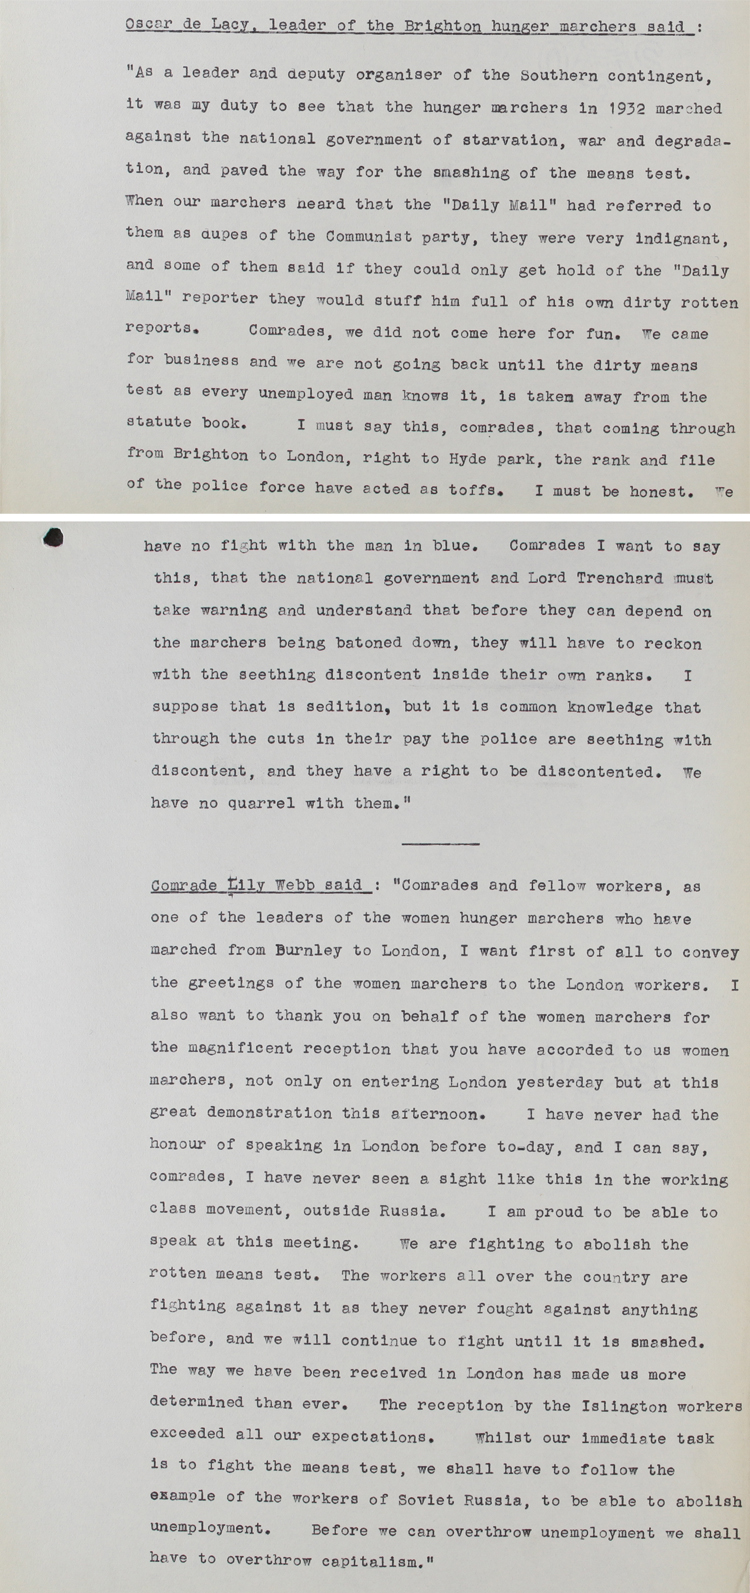 Extracts from transcript of shorthand notes taken by Police Sergeant A. Davies at the National Hunger Marcher's demonstration in Hyde Park, 27th October 1932 (HO 144/18186)